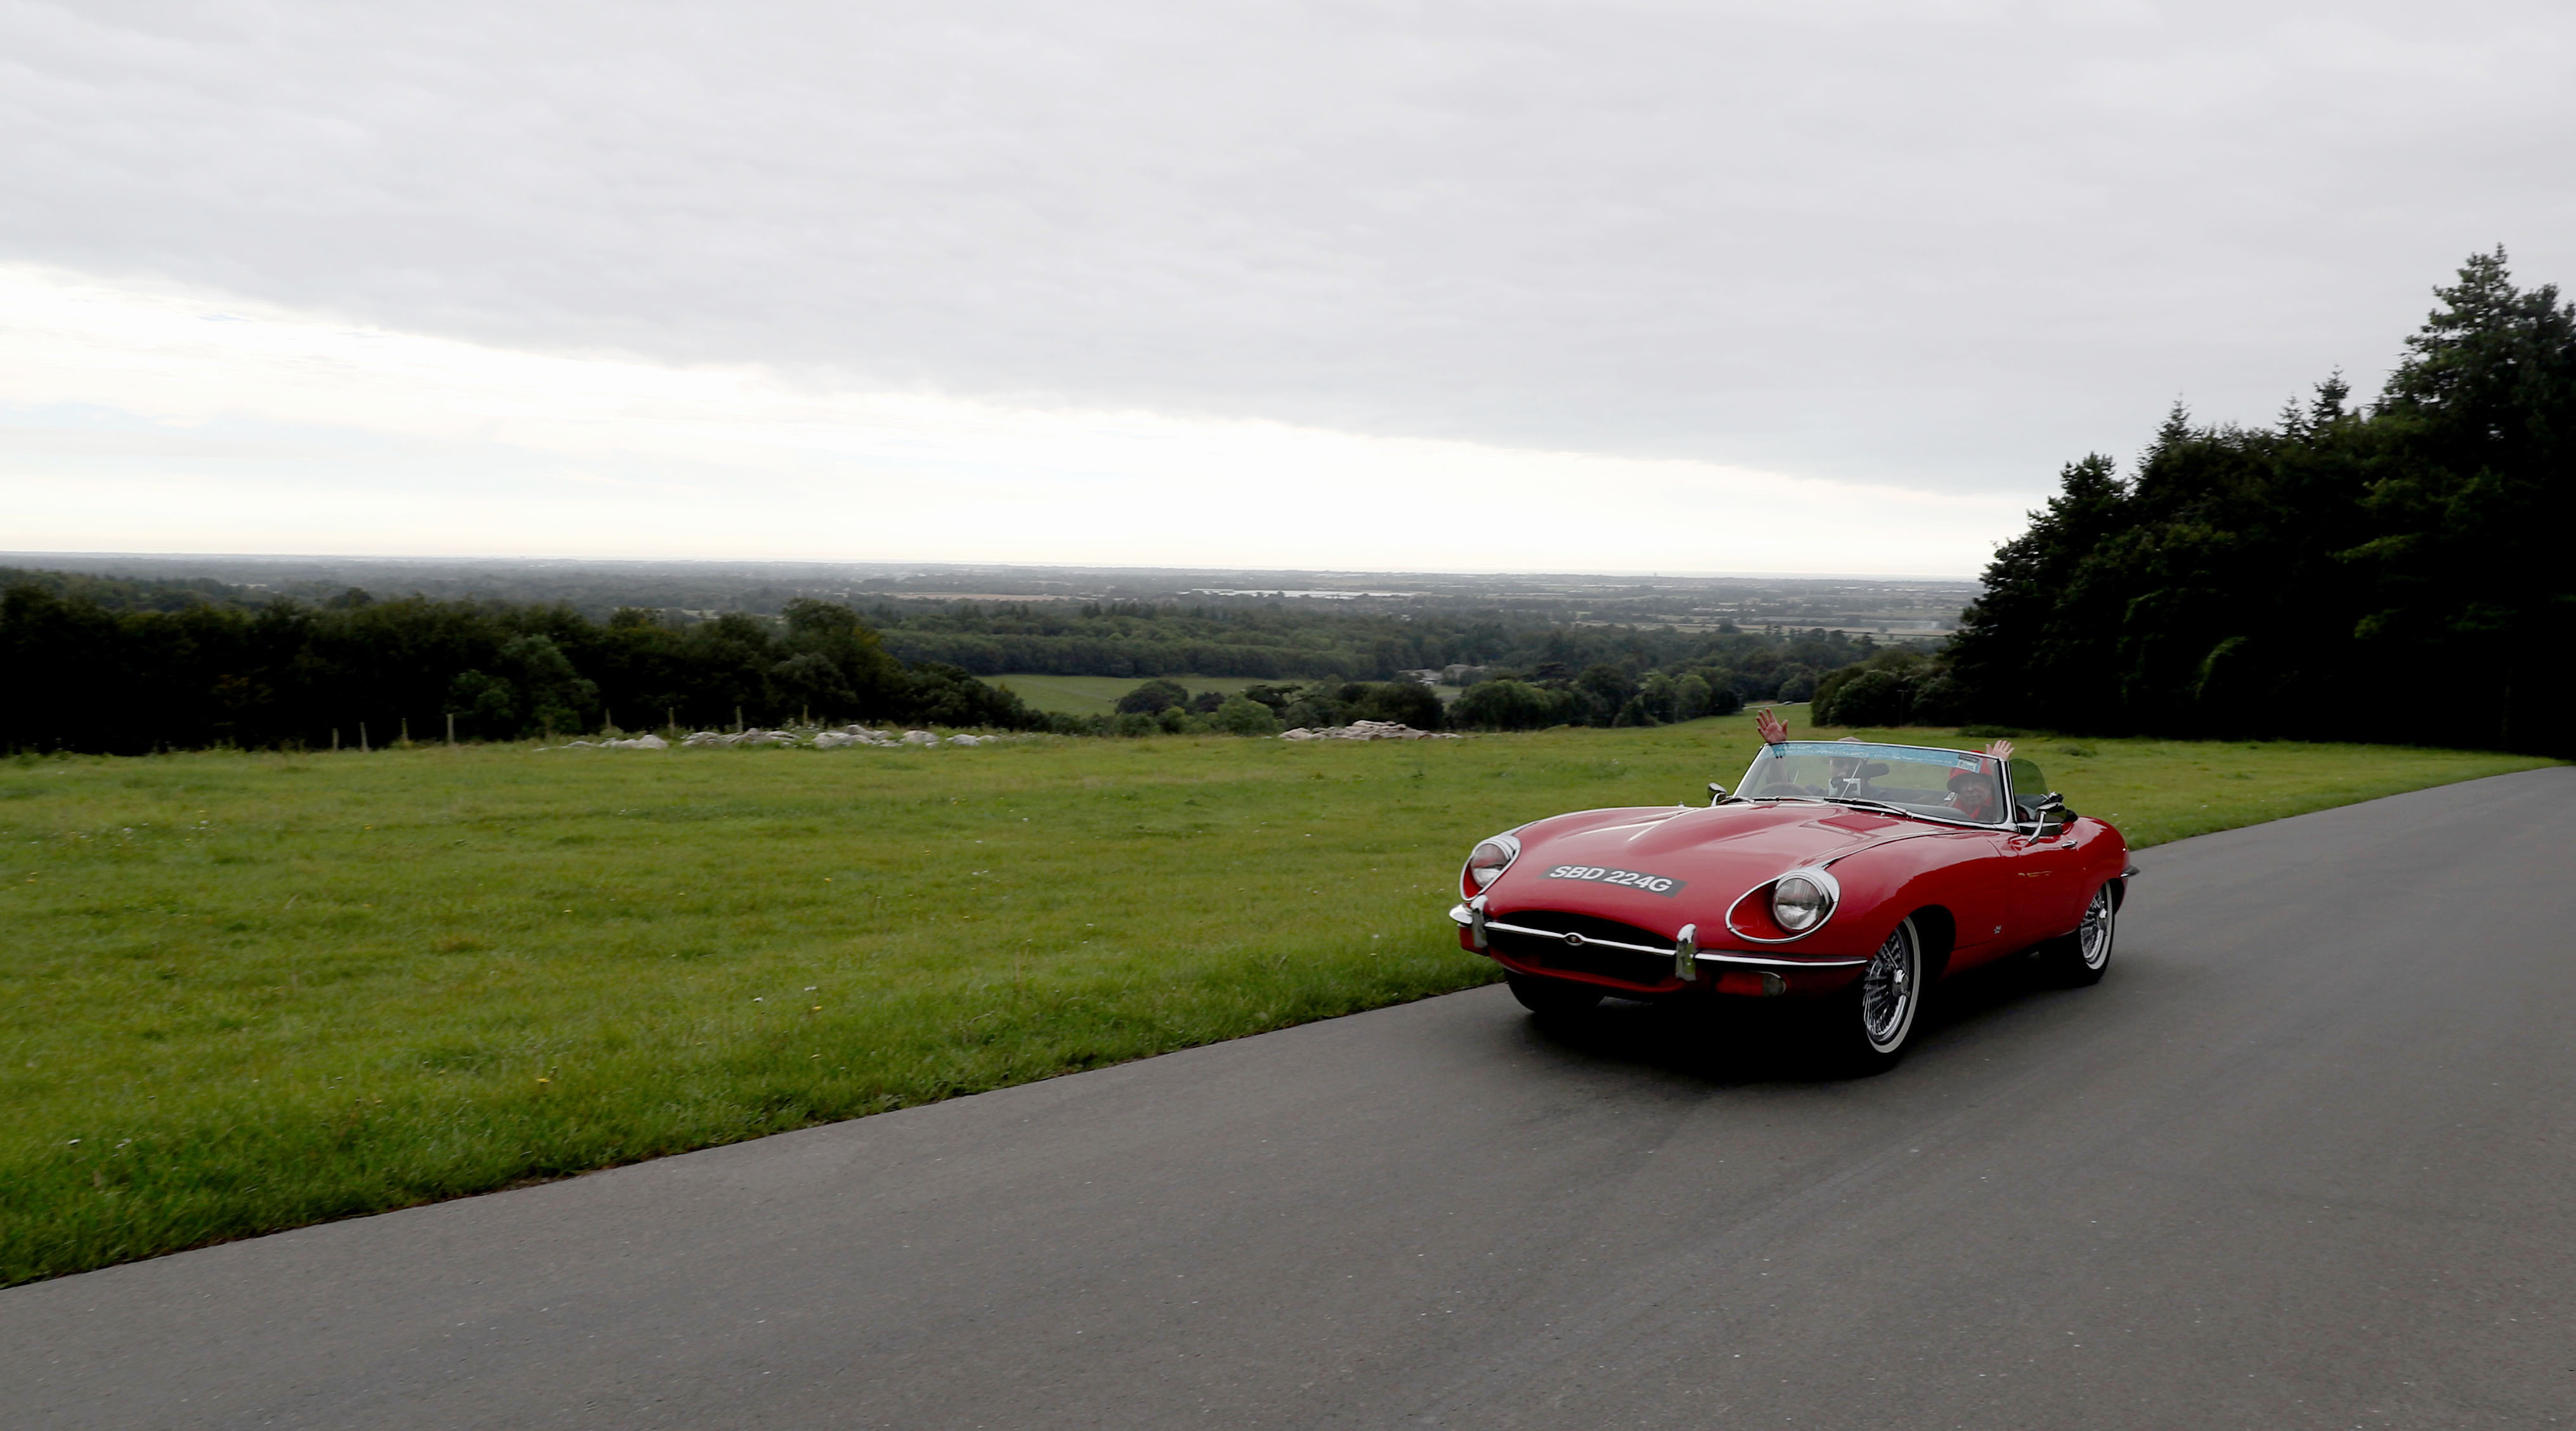 Red classic jaguar on a countryside drive